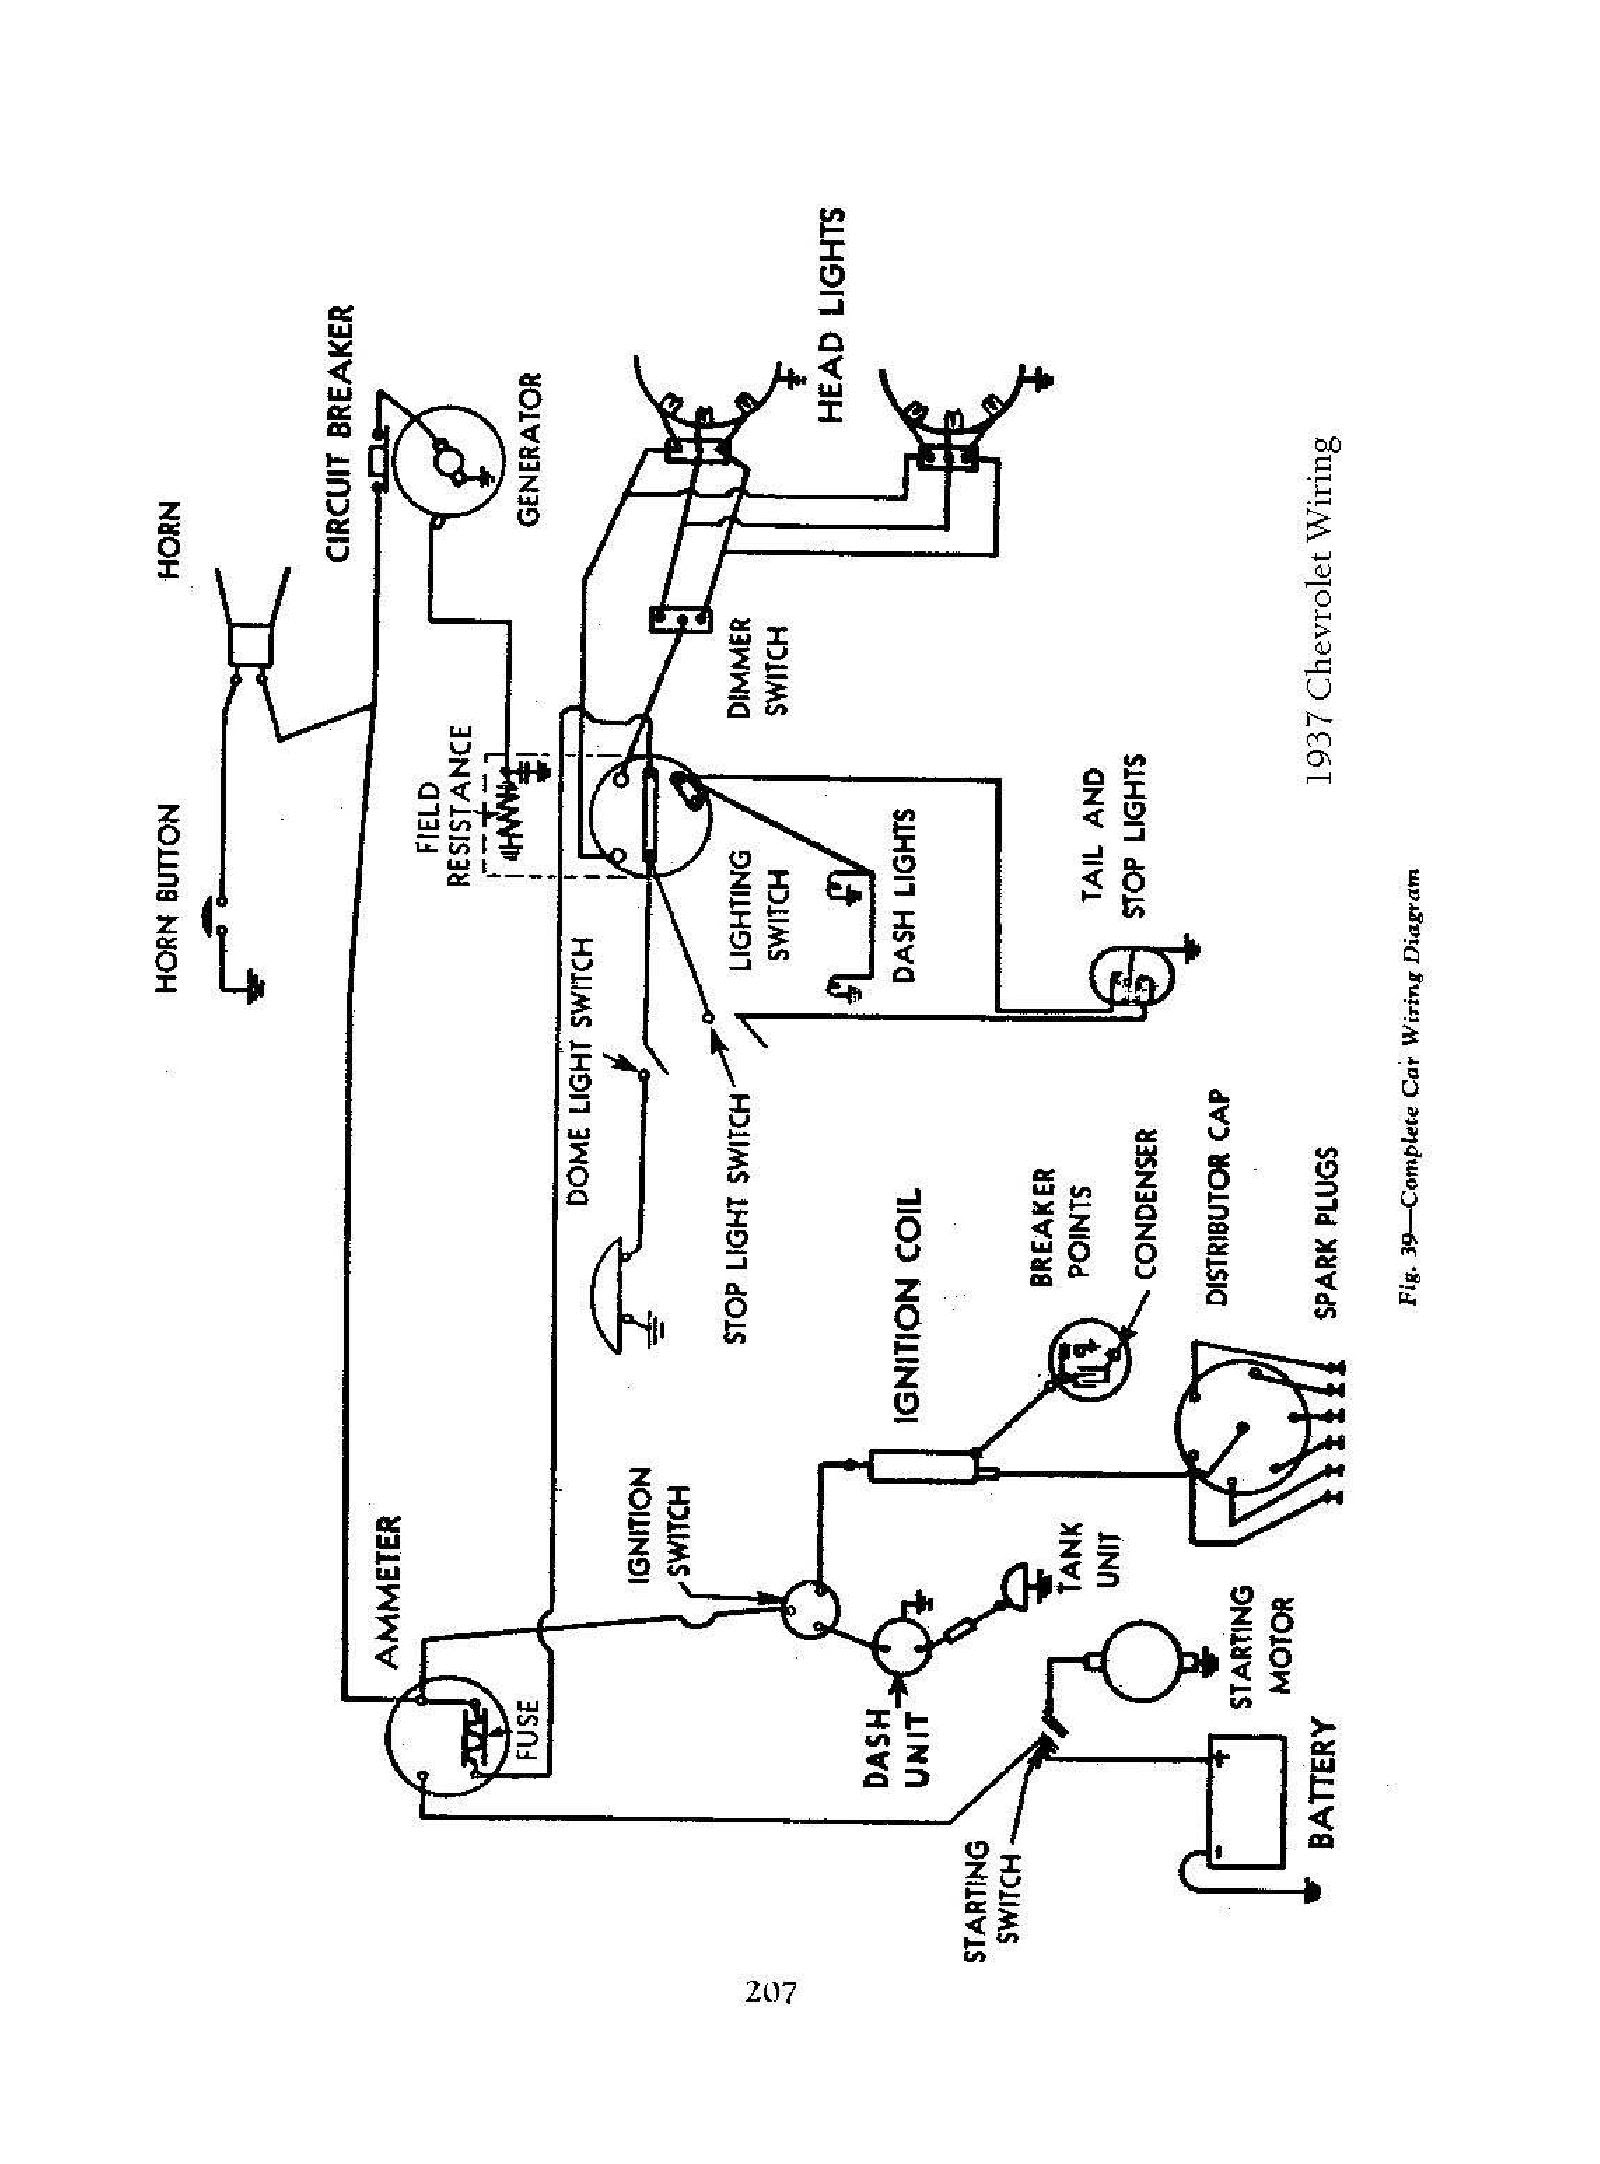 1b8 1955 Bel Air Ignition Wiring Diagram Wiring Library